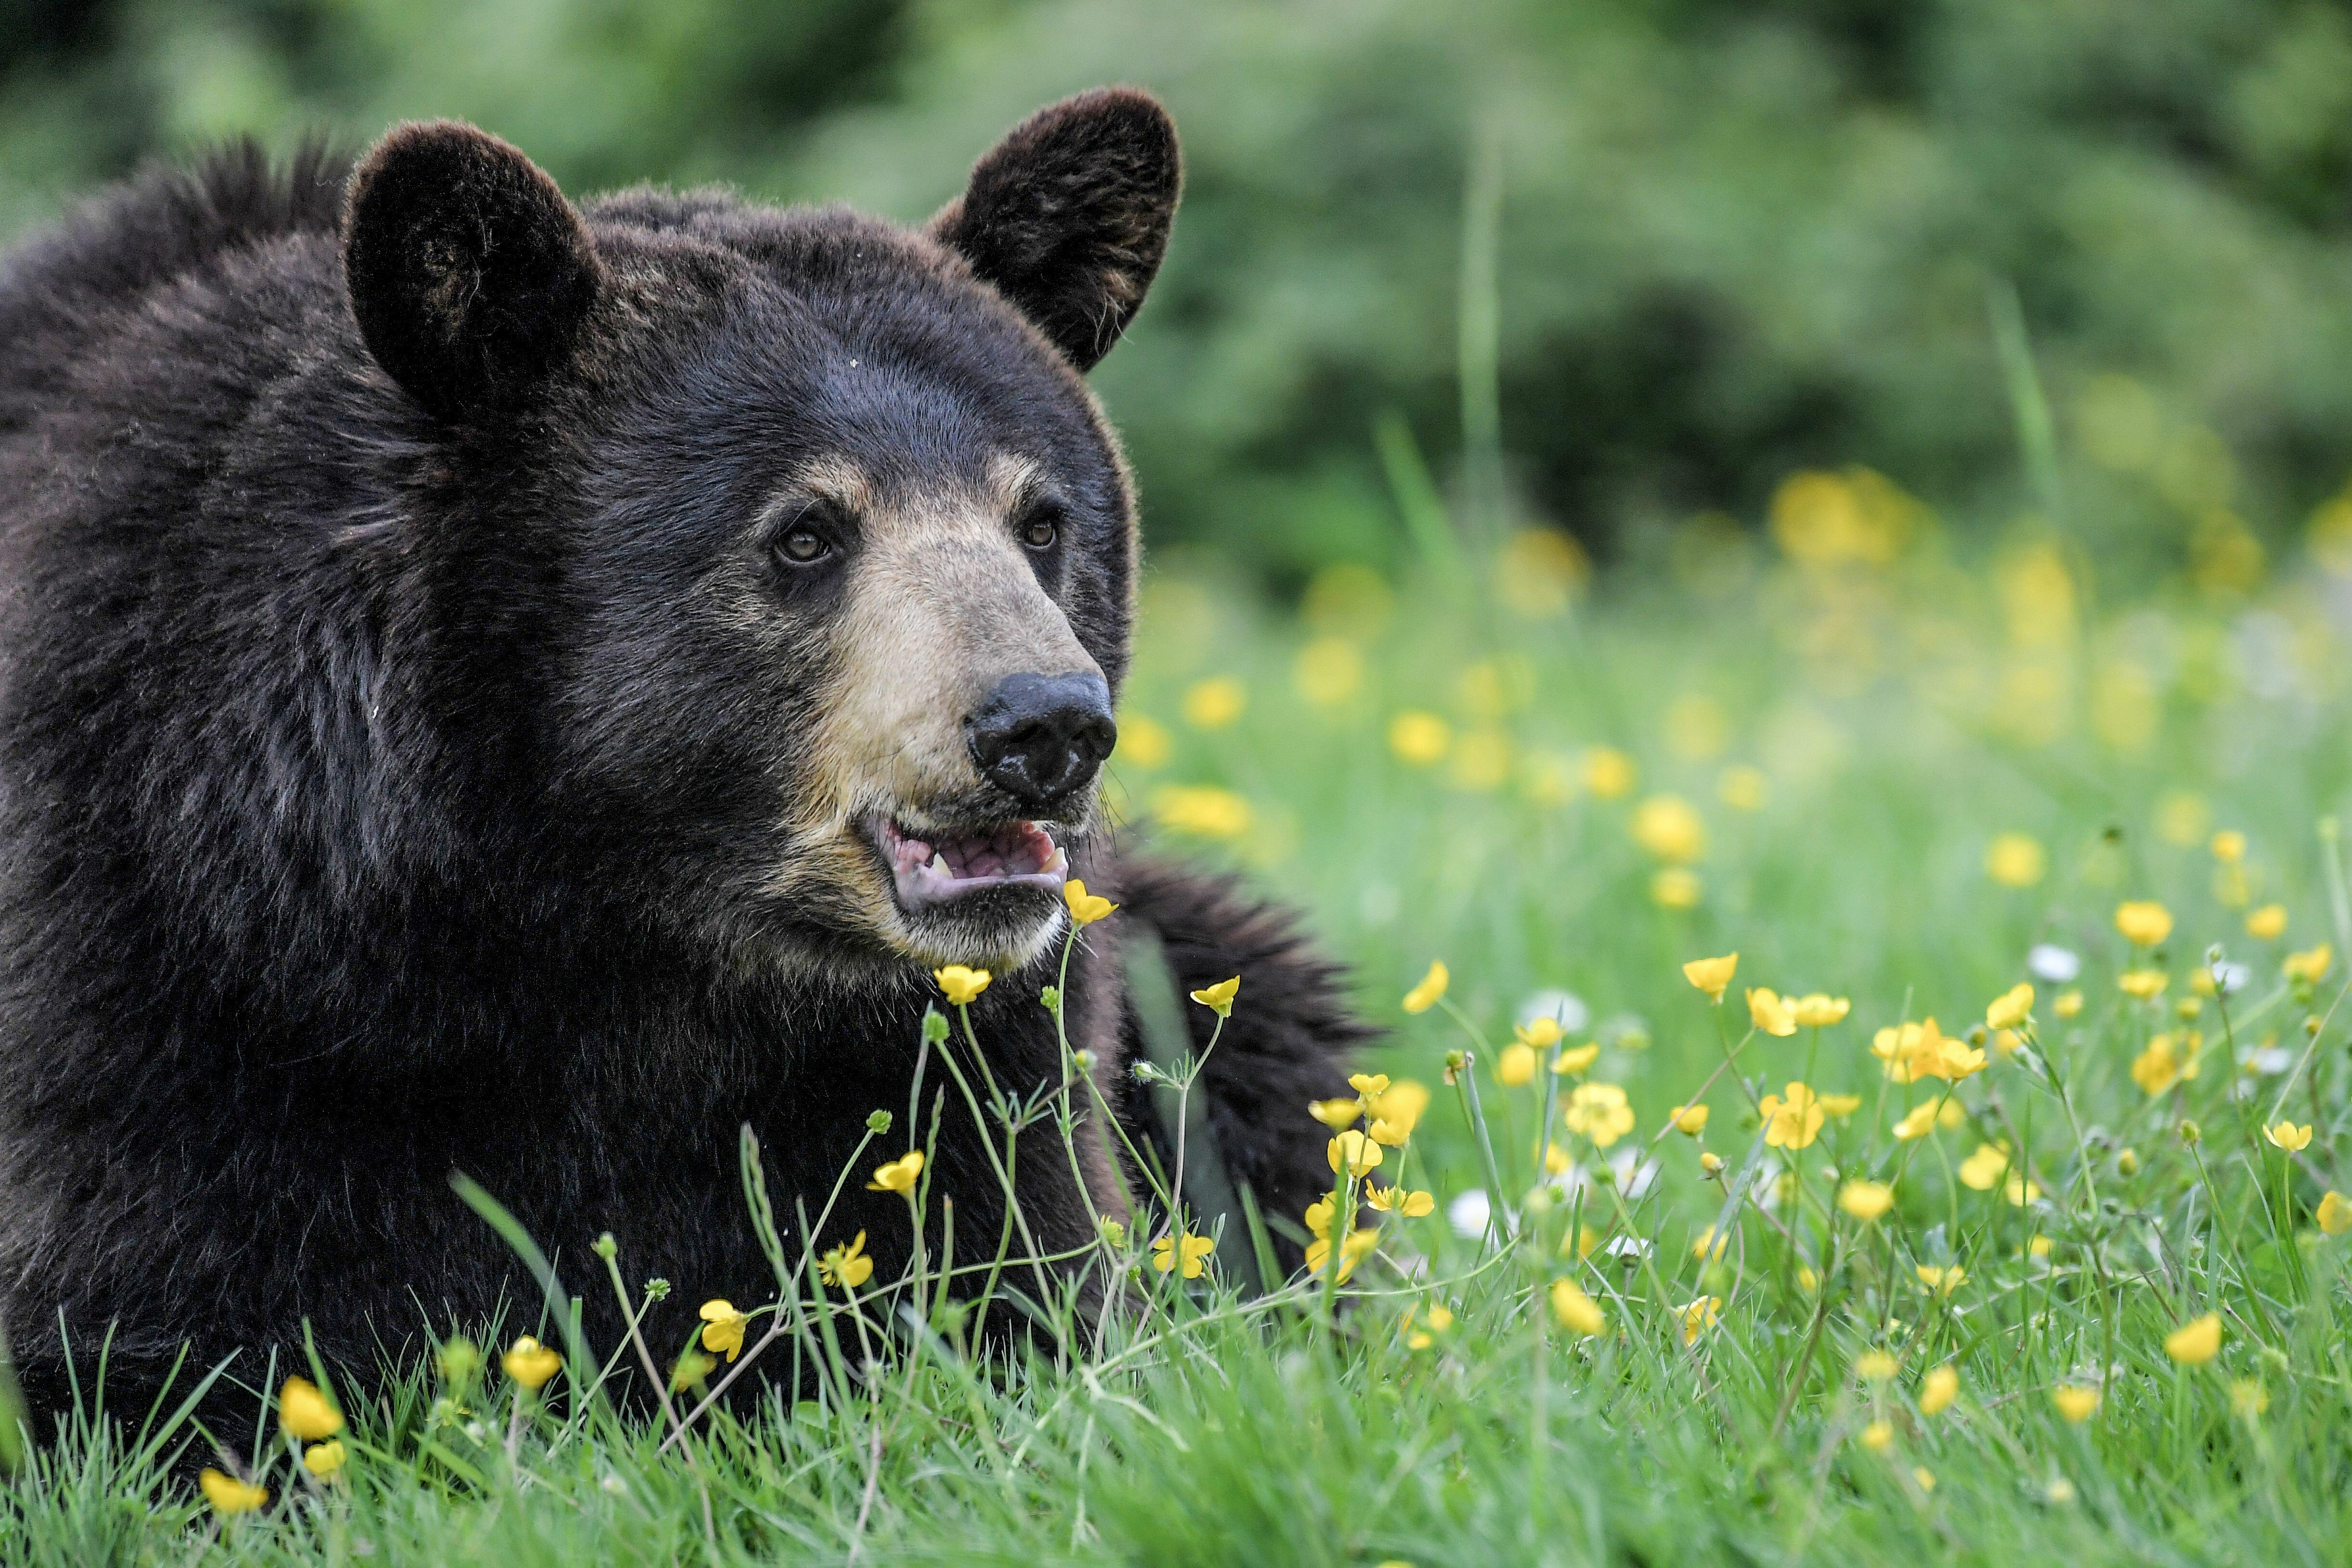 Michigan State Police Investigate I-75 Crash That Killed Fully-Grown Bear